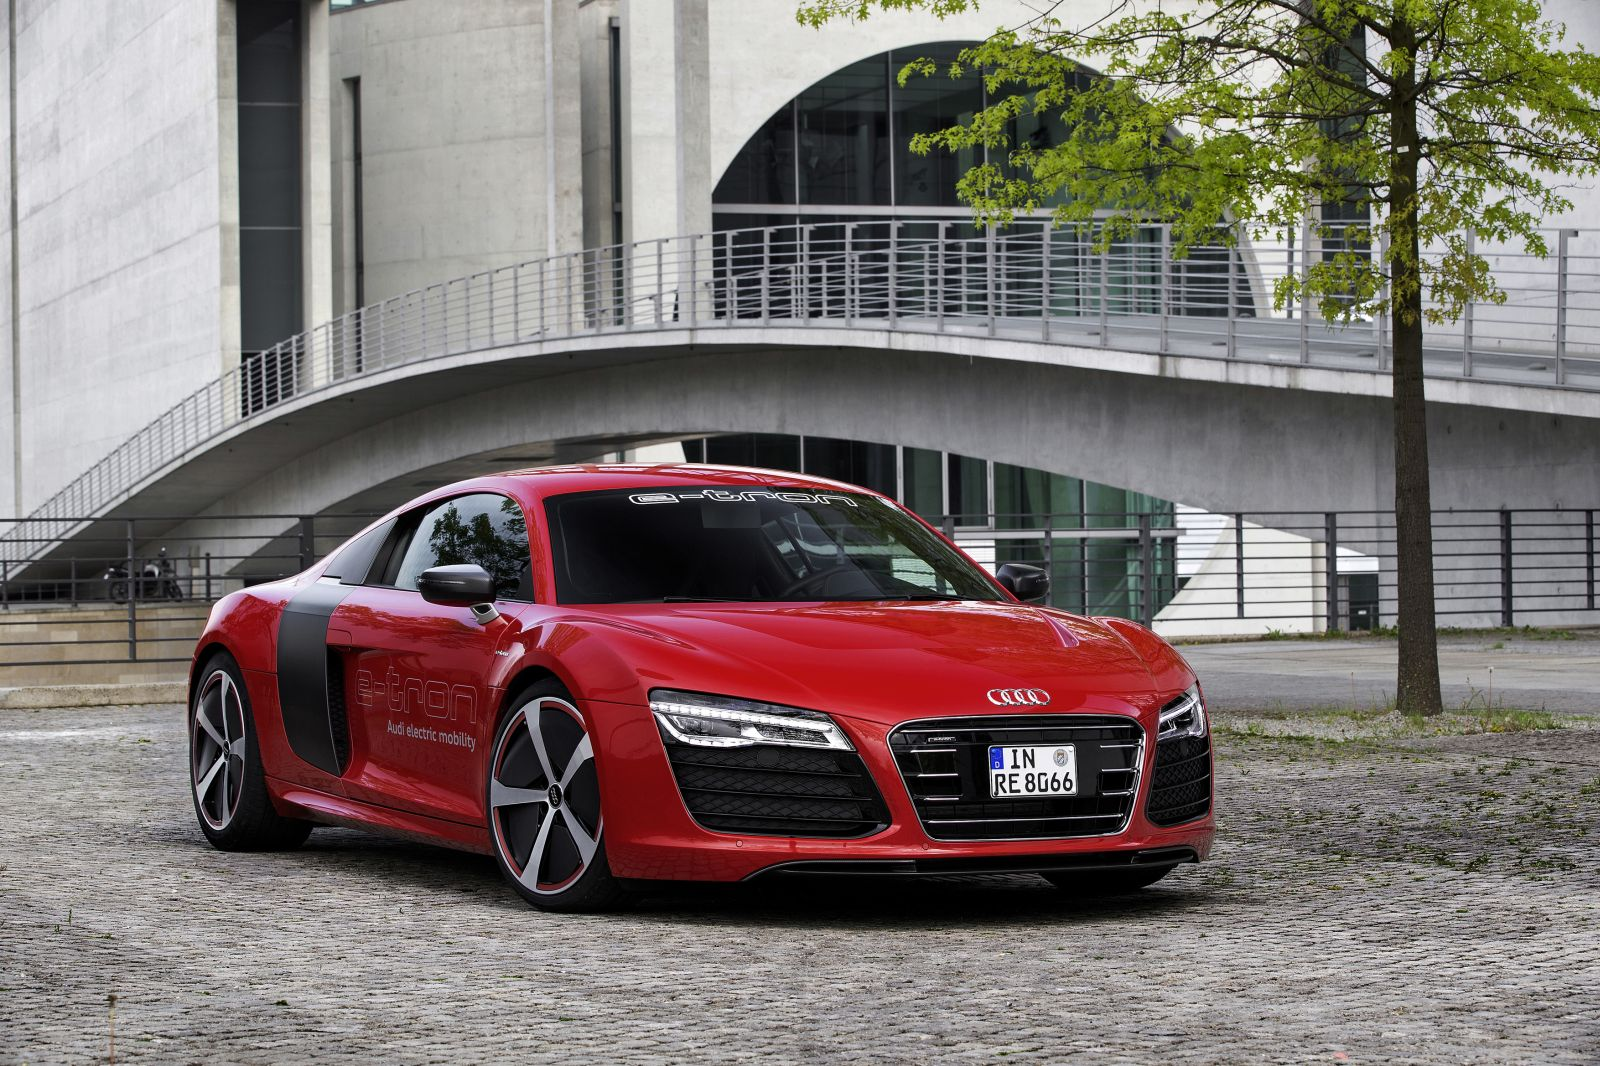 a4e gallery audi r8 v8 v10 spyder gt gt spyder audi r8 e tron. Black Bedroom Furniture Sets. Home Design Ideas